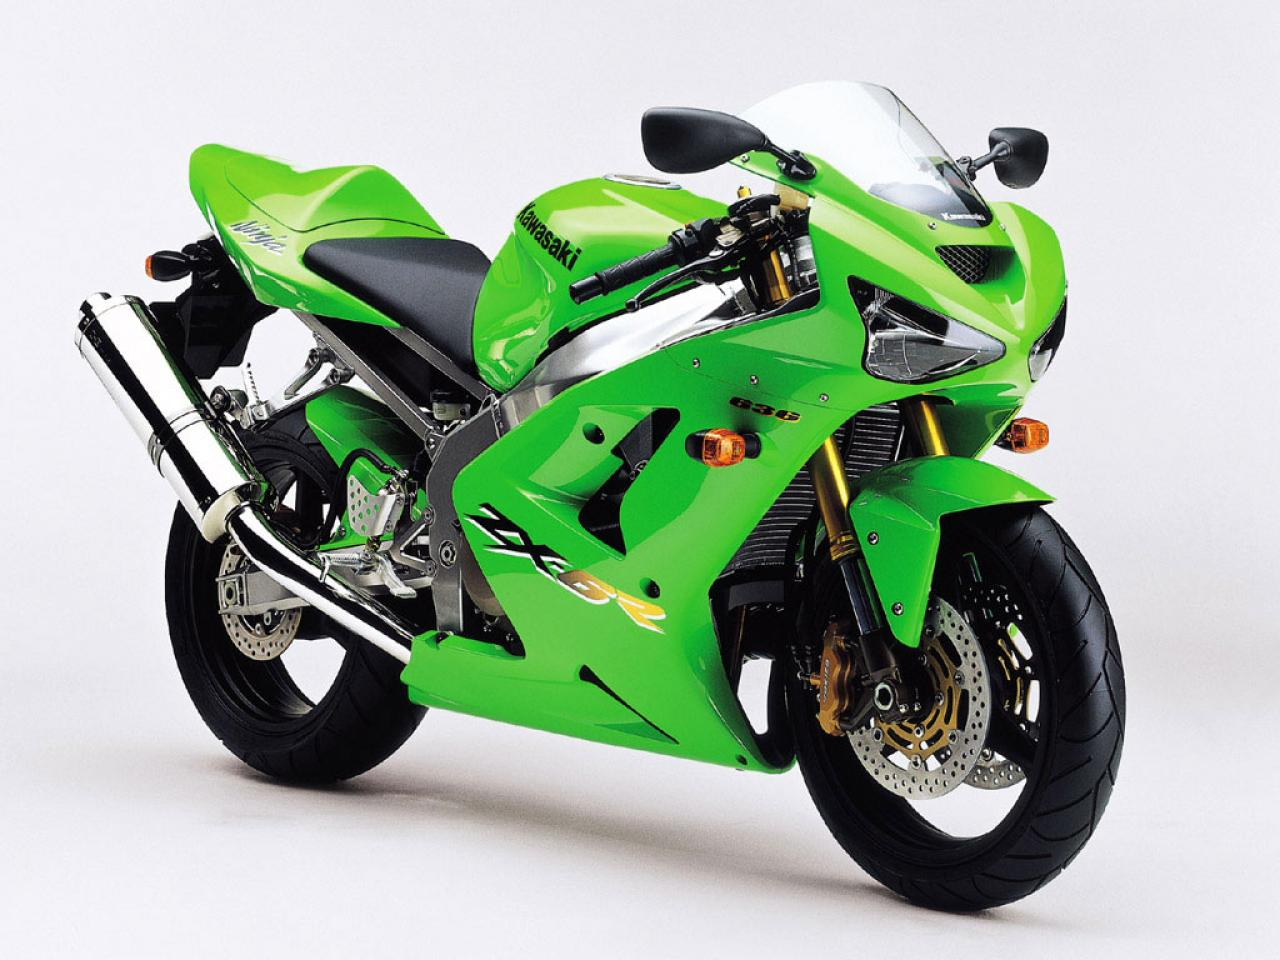 2012 kawasaki ninja zx 6r moto zombdrive com. Black Bedroom Furniture Sets. Home Design Ideas